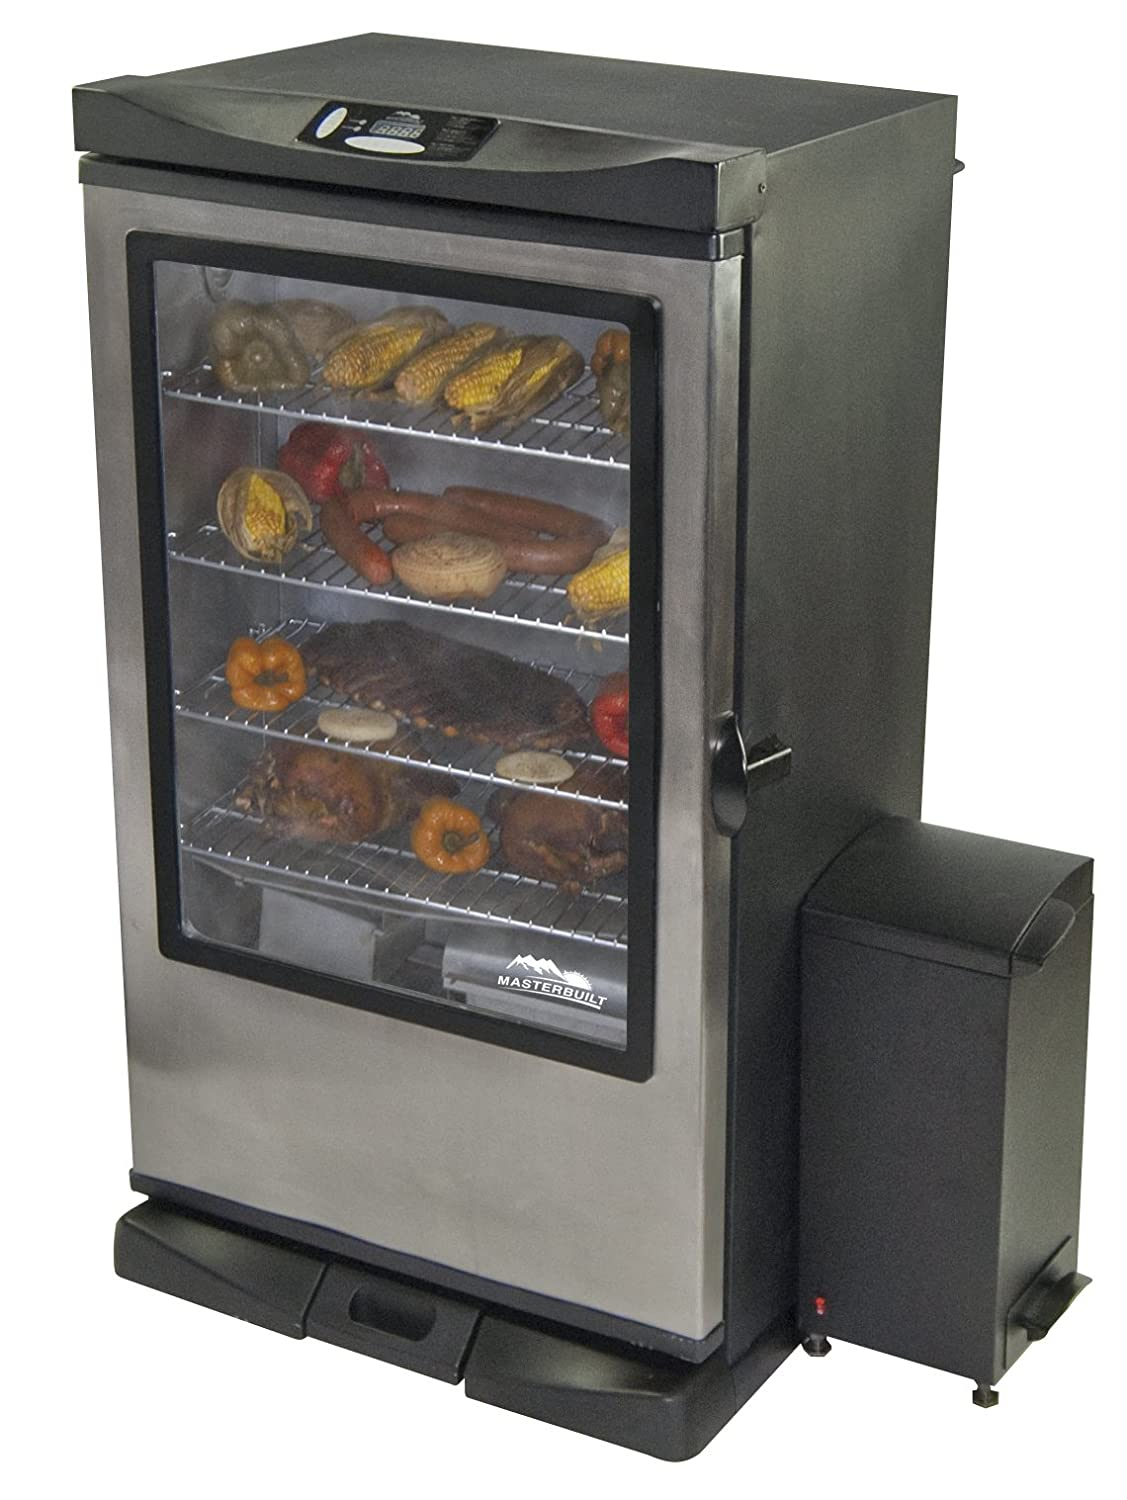 masterbuilt electric smoker control panel  | cookingadvisors.com